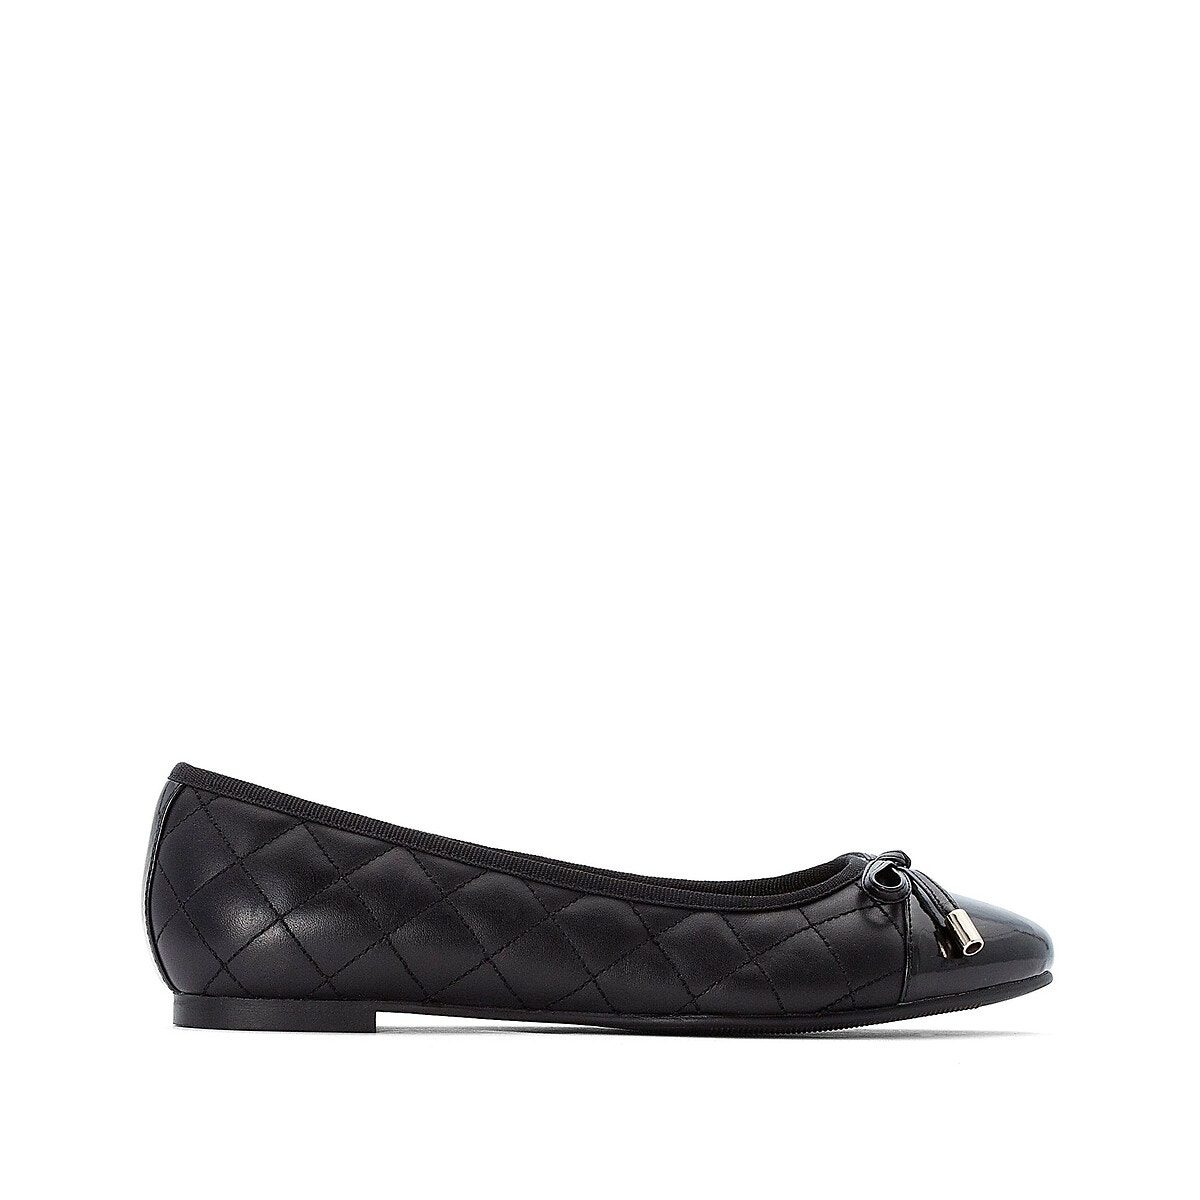 Anne Weyburn - Quilted Leather Ballet Pumps<br /> - 6527&0001